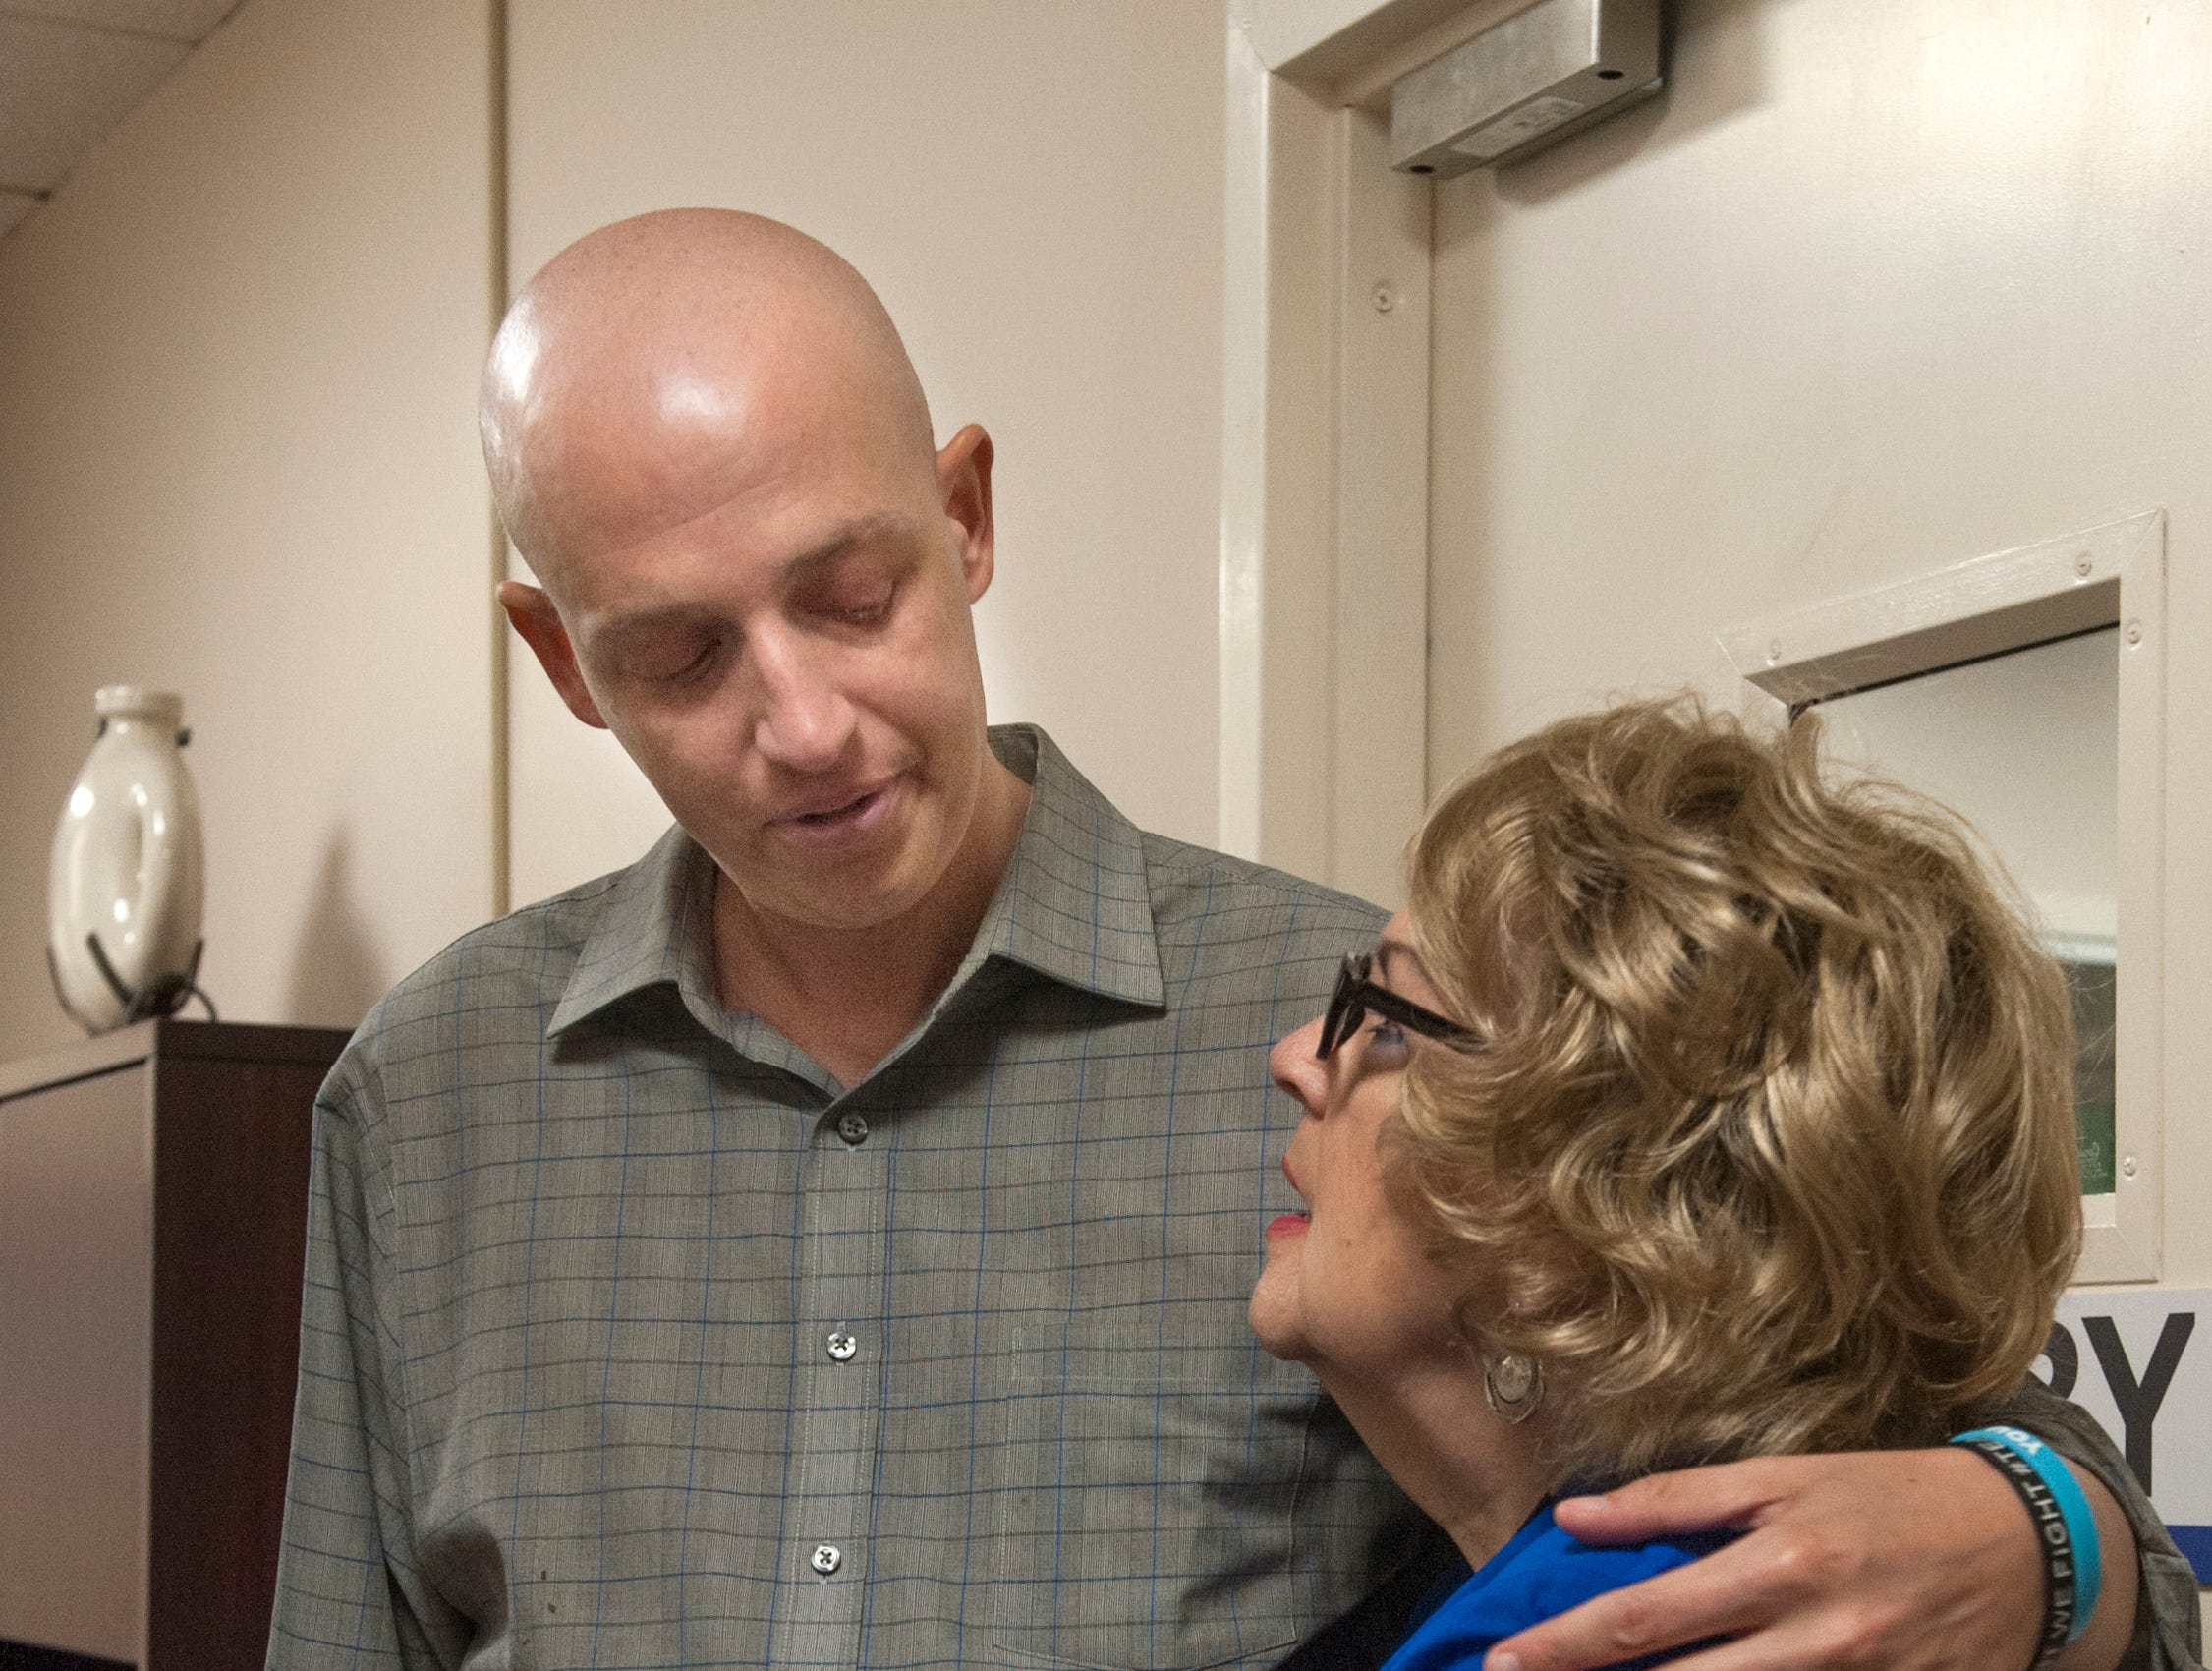 Mike Sands pauses to talk a few minutes with WLBT and FOX 40 receptionist Sally Brock when she asks to speak with him.